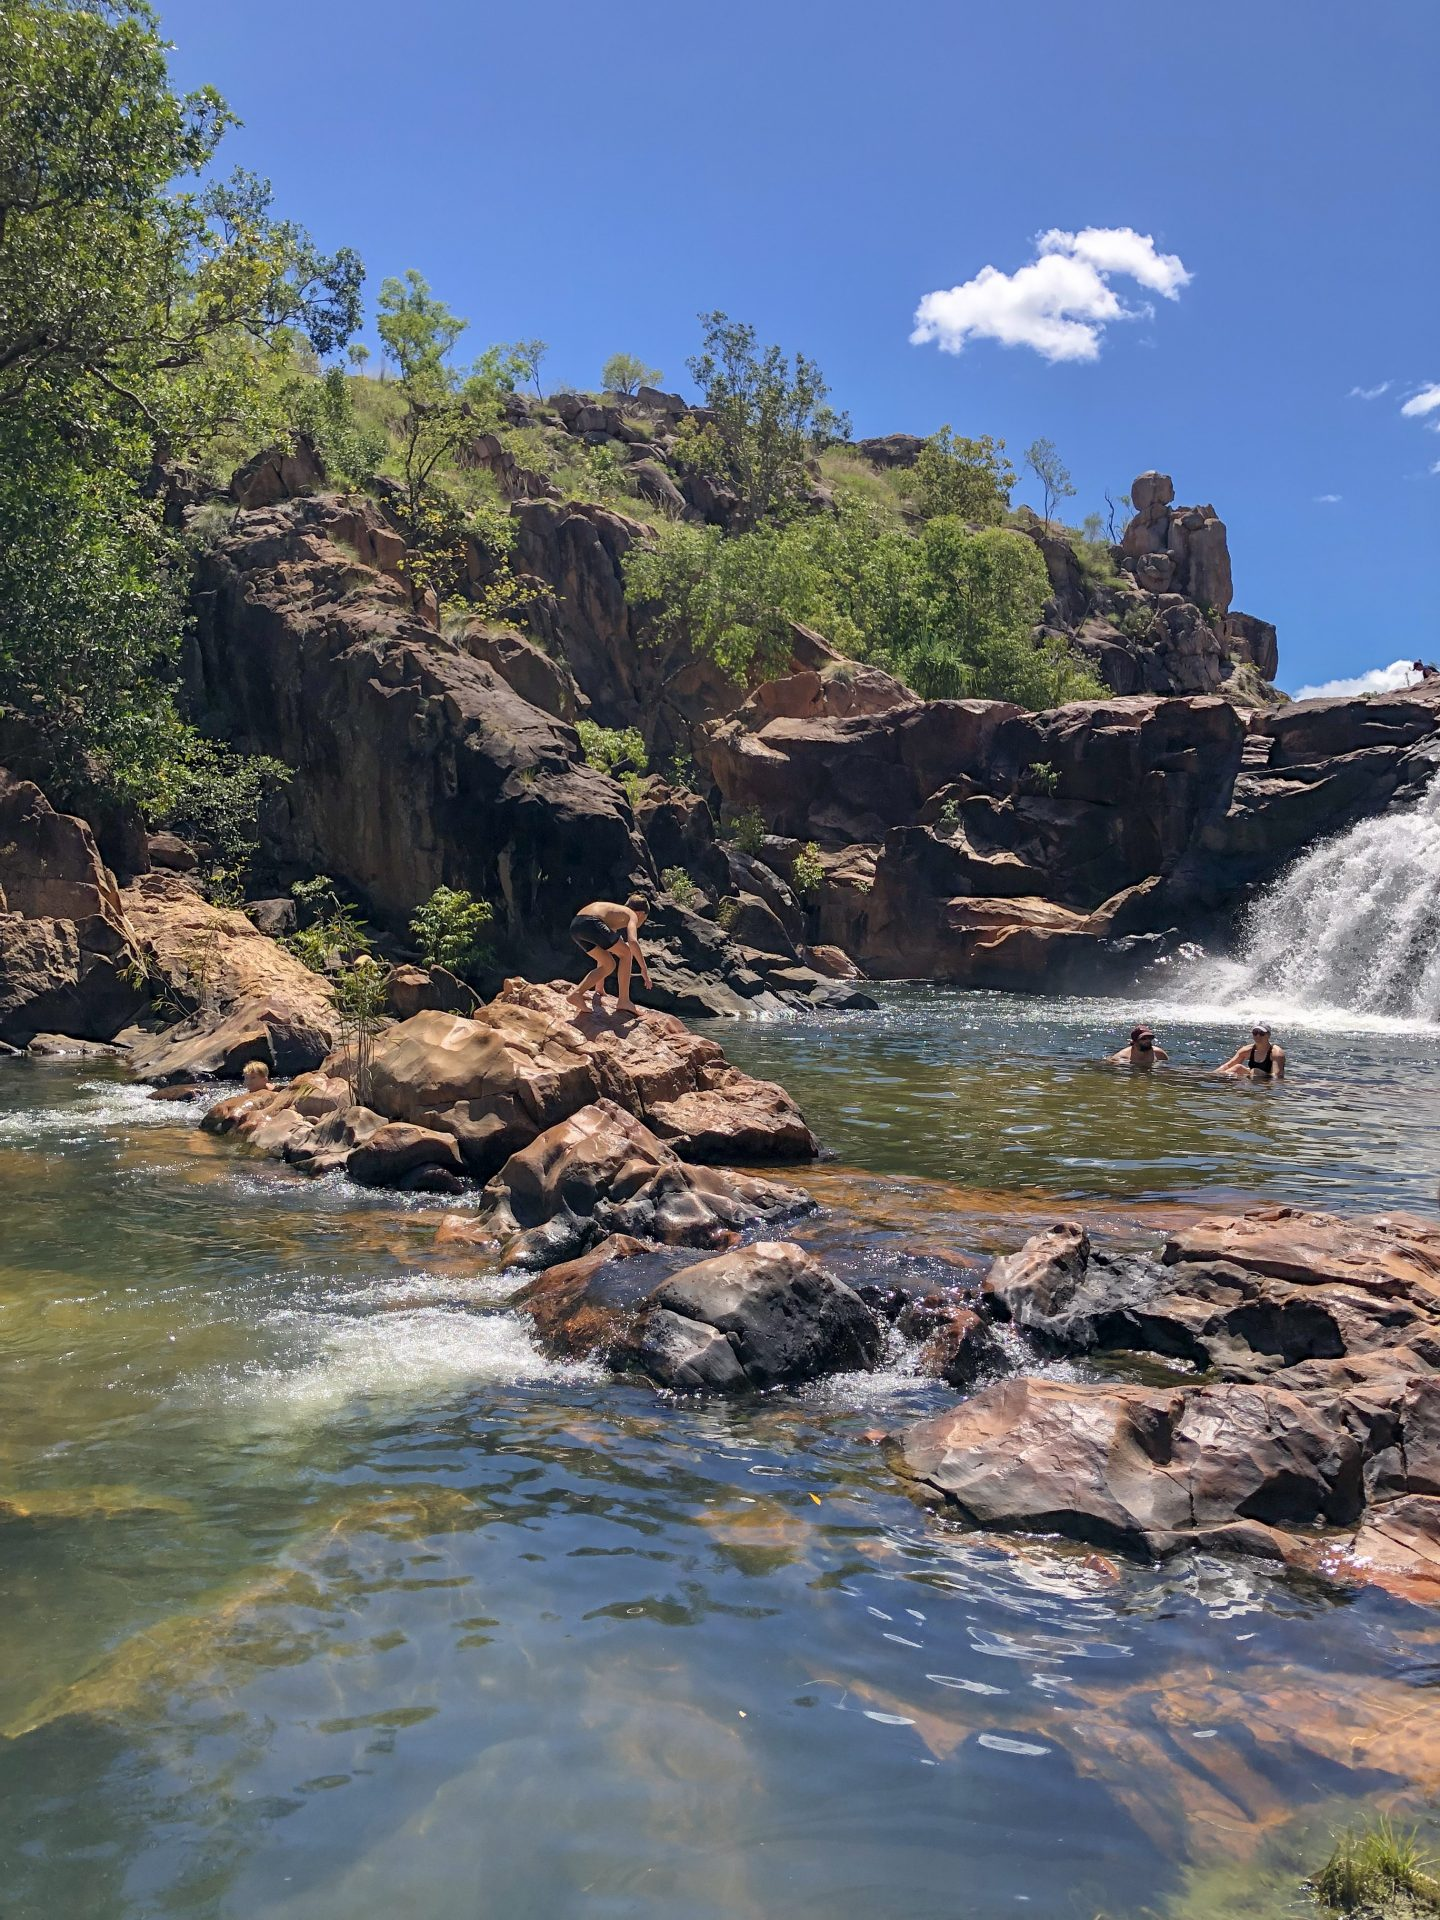 Edith Falls in Katherine